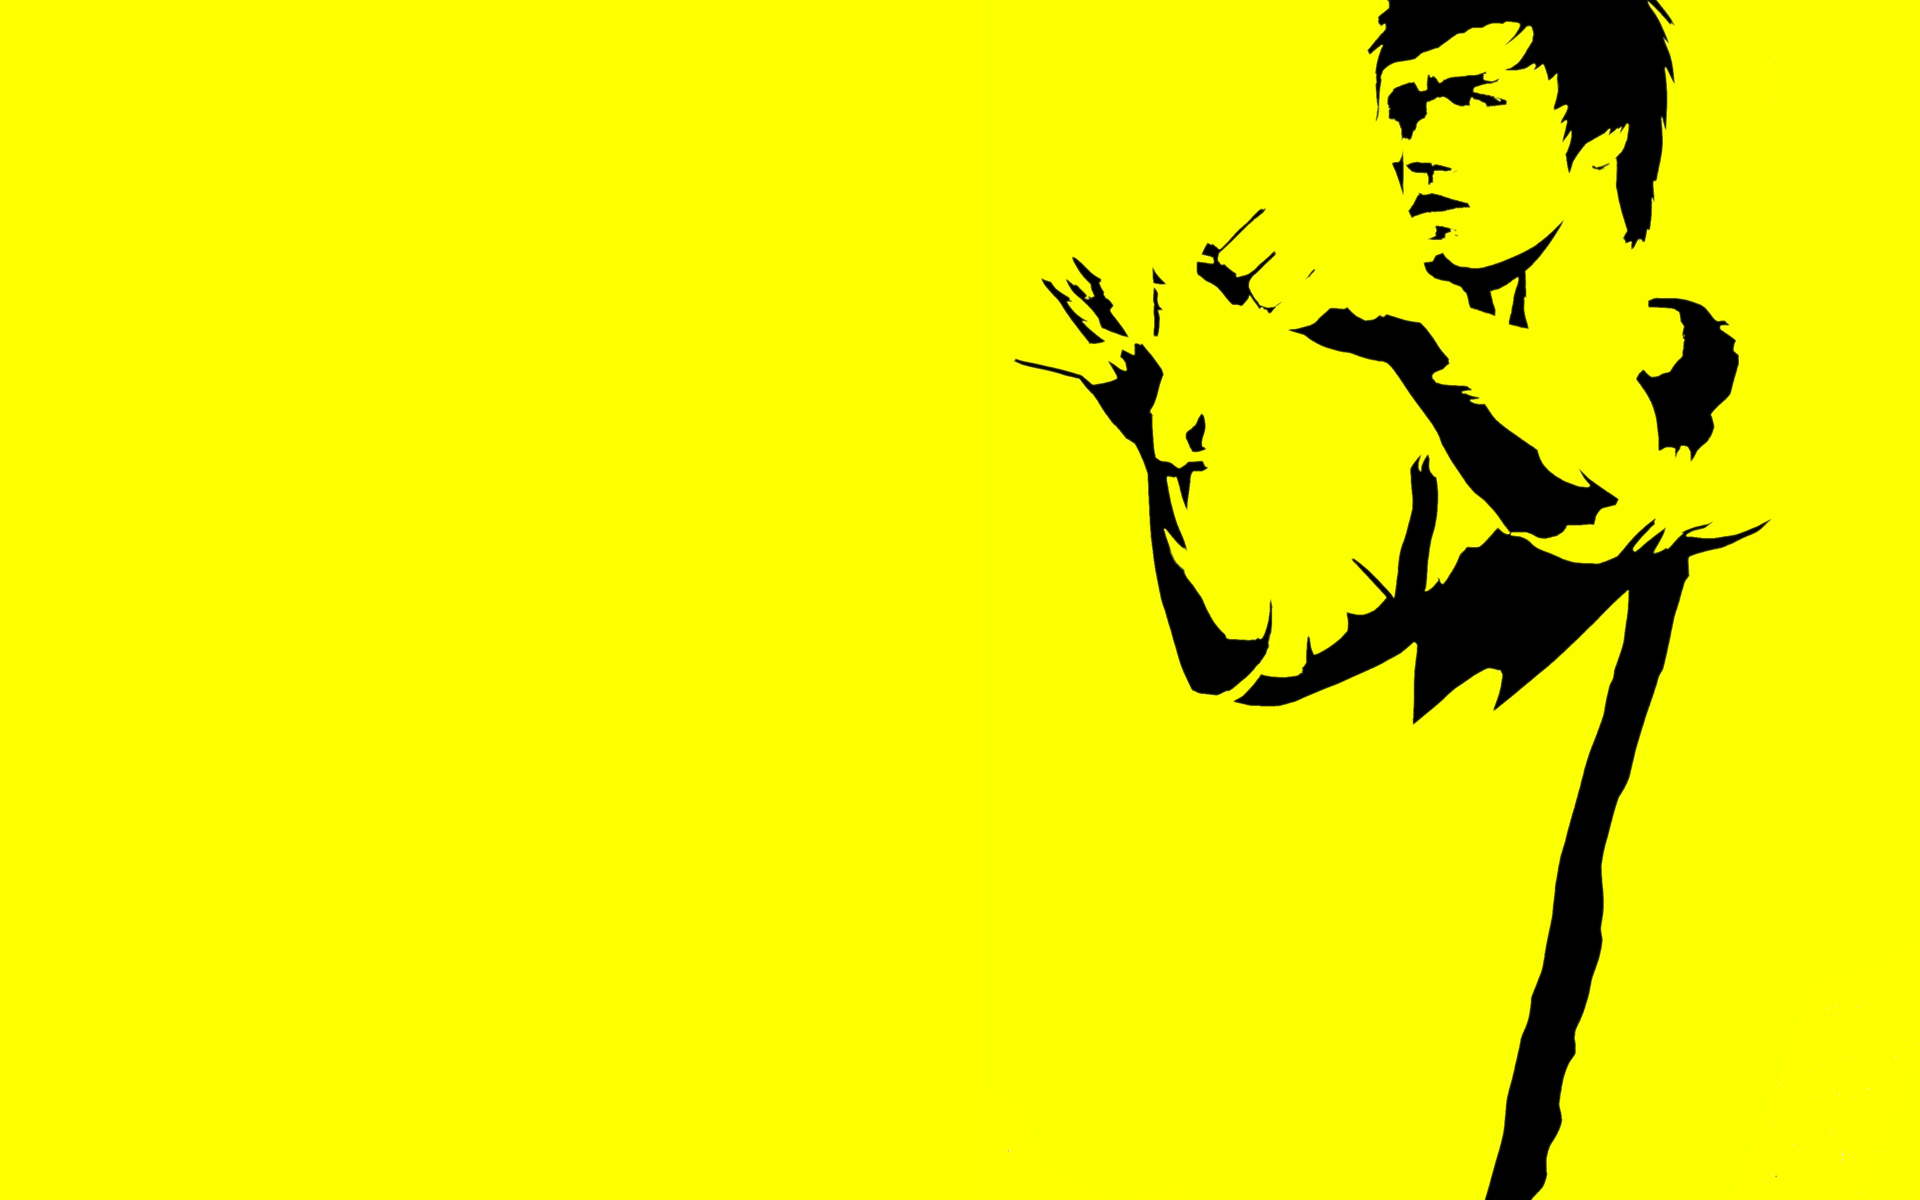 Bruce Lee Images Free Download Bruce Lee Art Wallpaper Iphone Art Prints Quotes